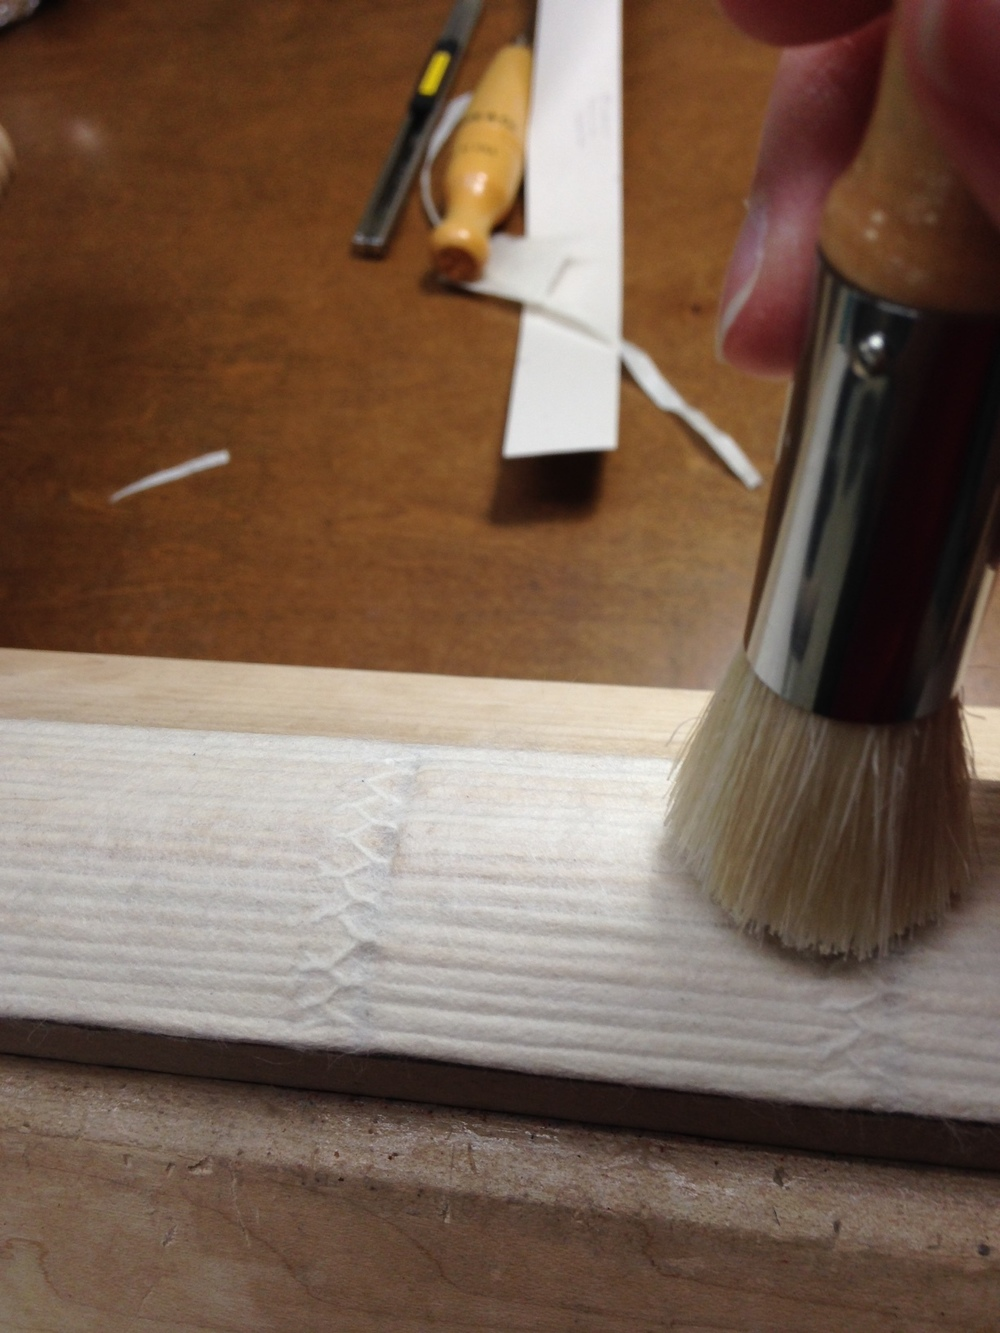 The first spine lining was applied using paste and a stipple brush to ensure good adhesion.